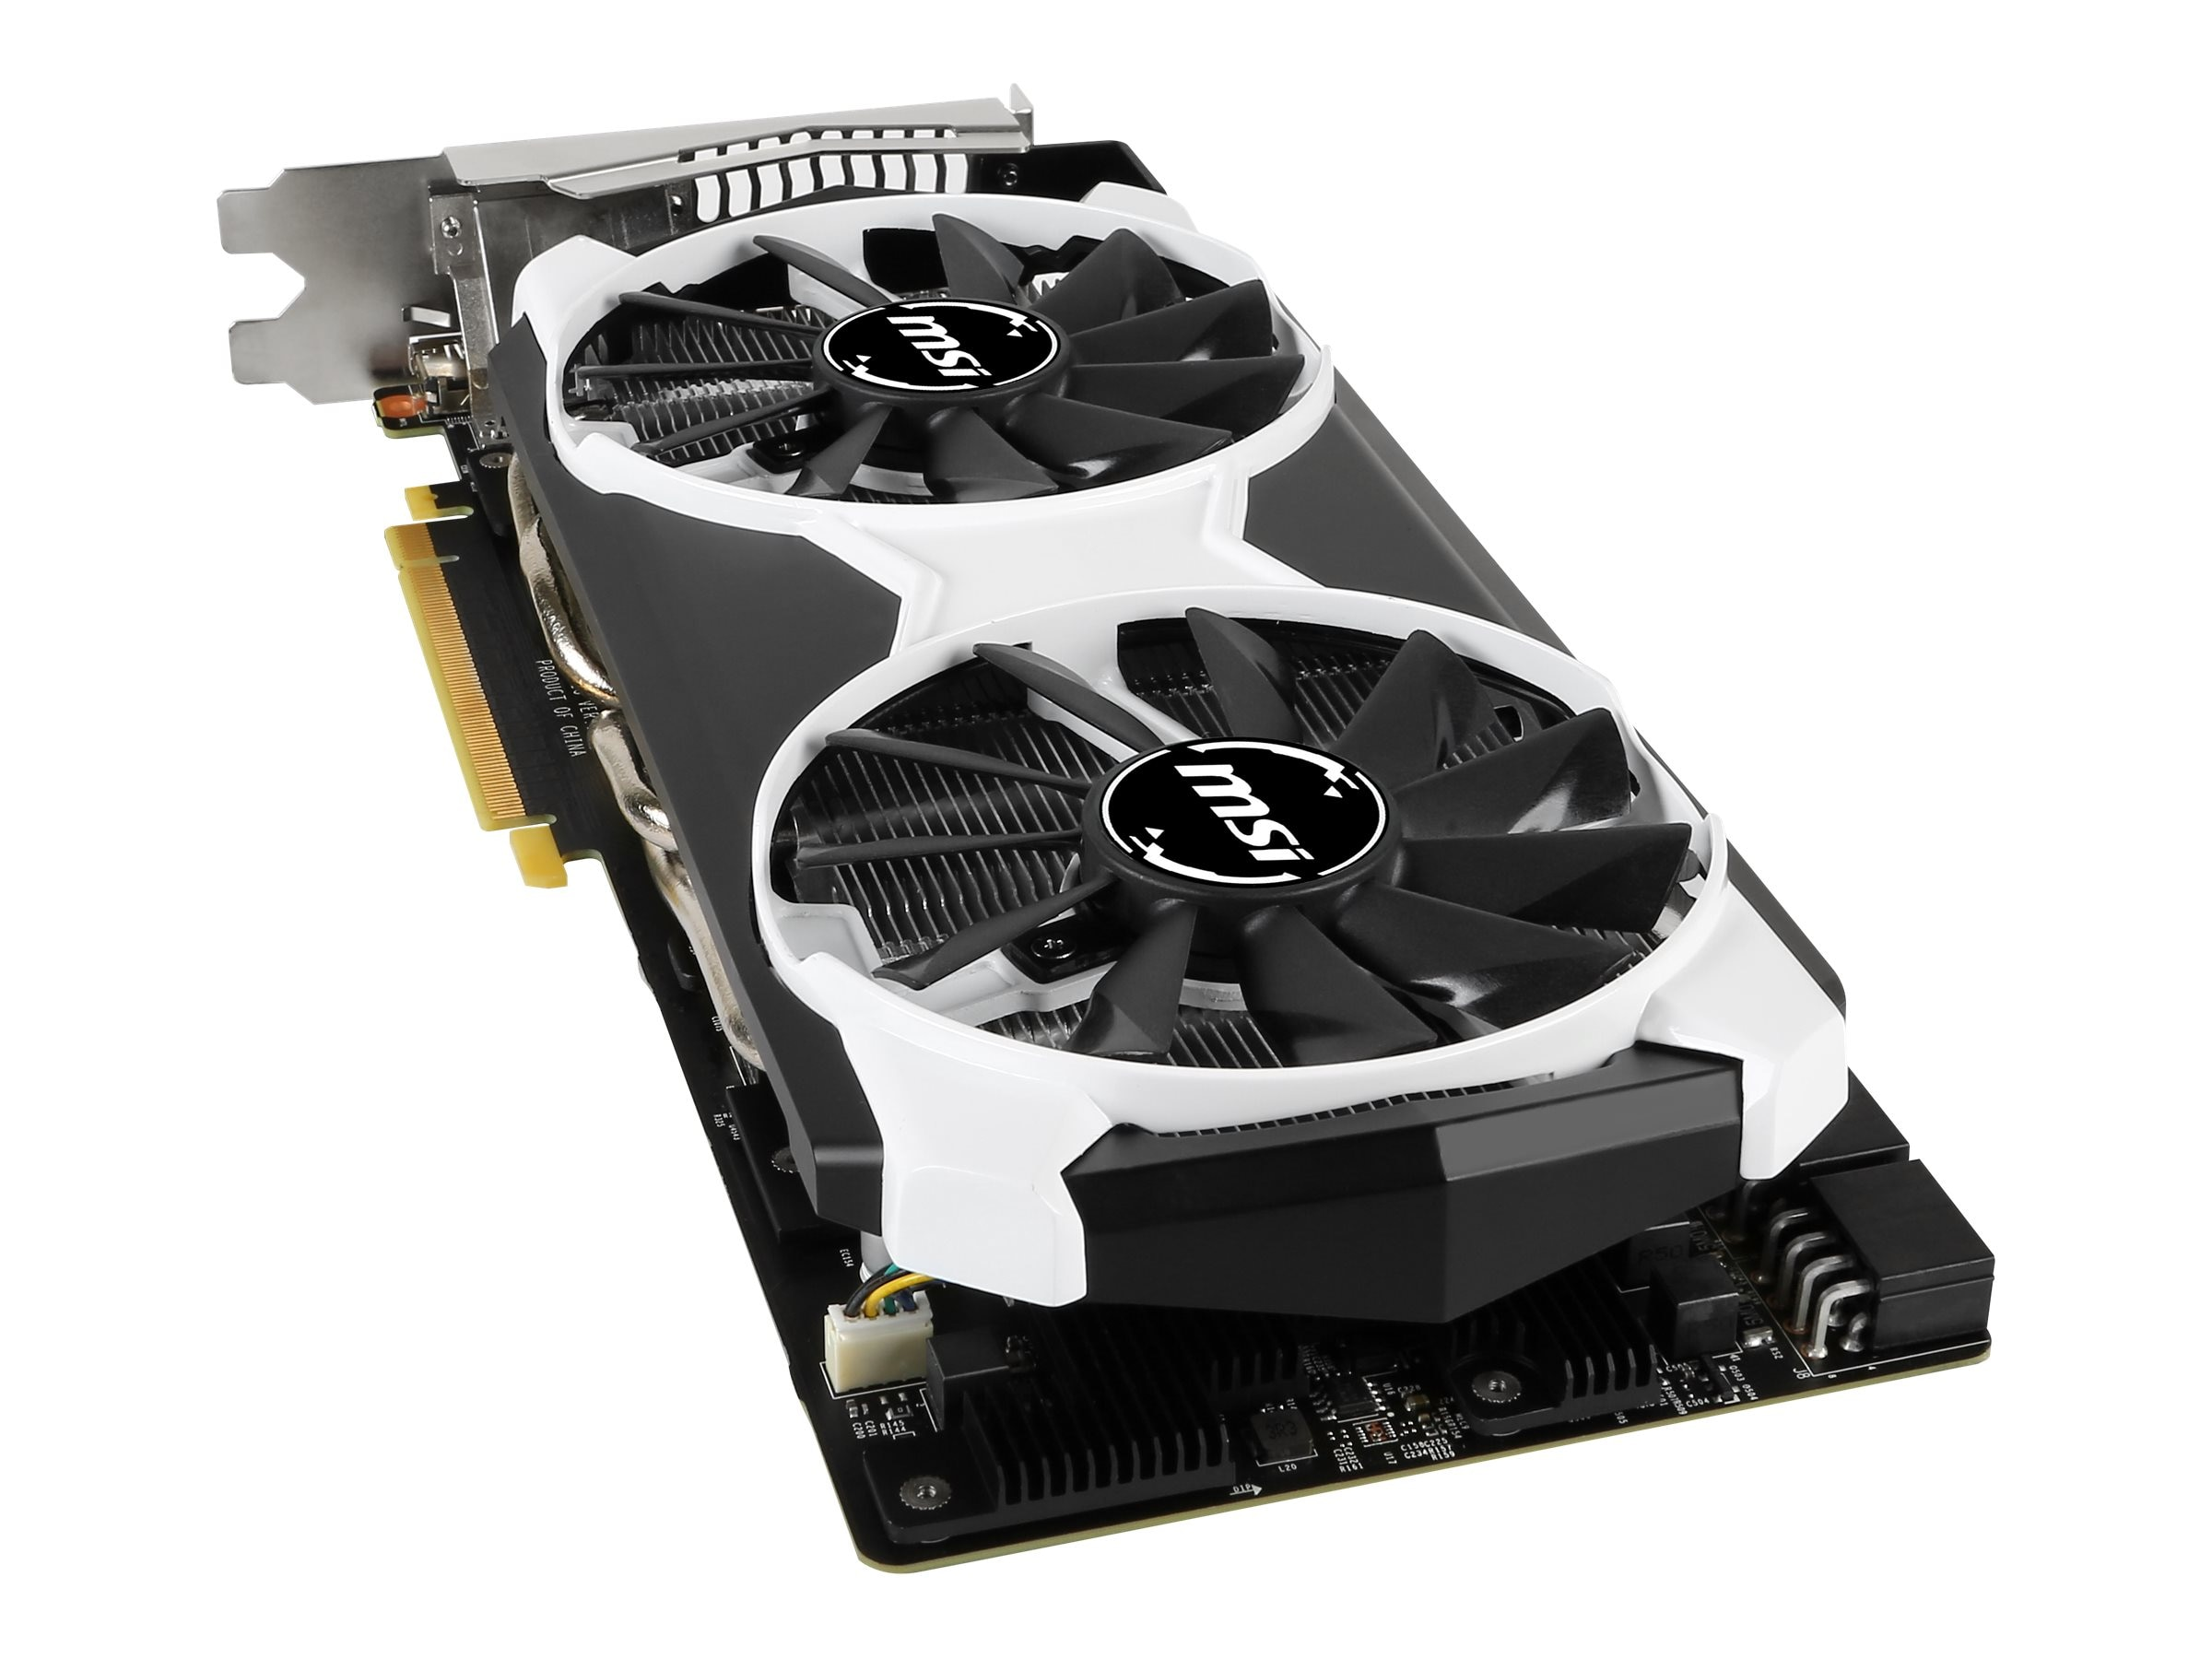 Microstar GeForce GTX 980 Ti PCIe 3.0 x16 Overclocked Graphics Card, 6GB GDDR5, GTX 980TI 6GD5T OC, 30623516, Graphics/Video Accelerators